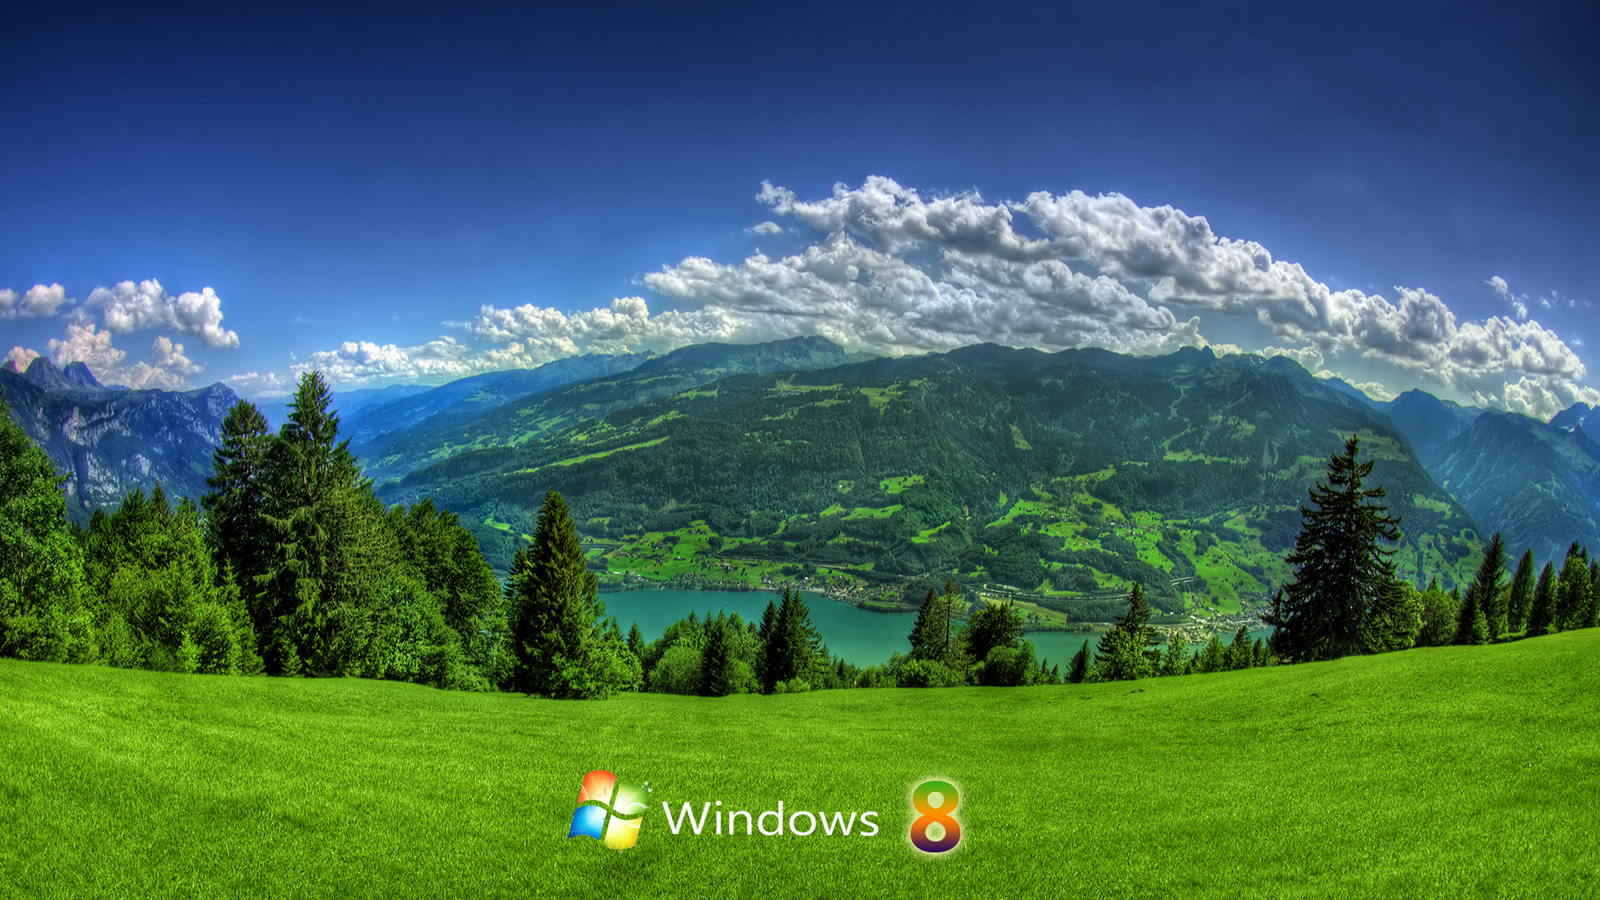 Scenic Windows 8 wallpaper